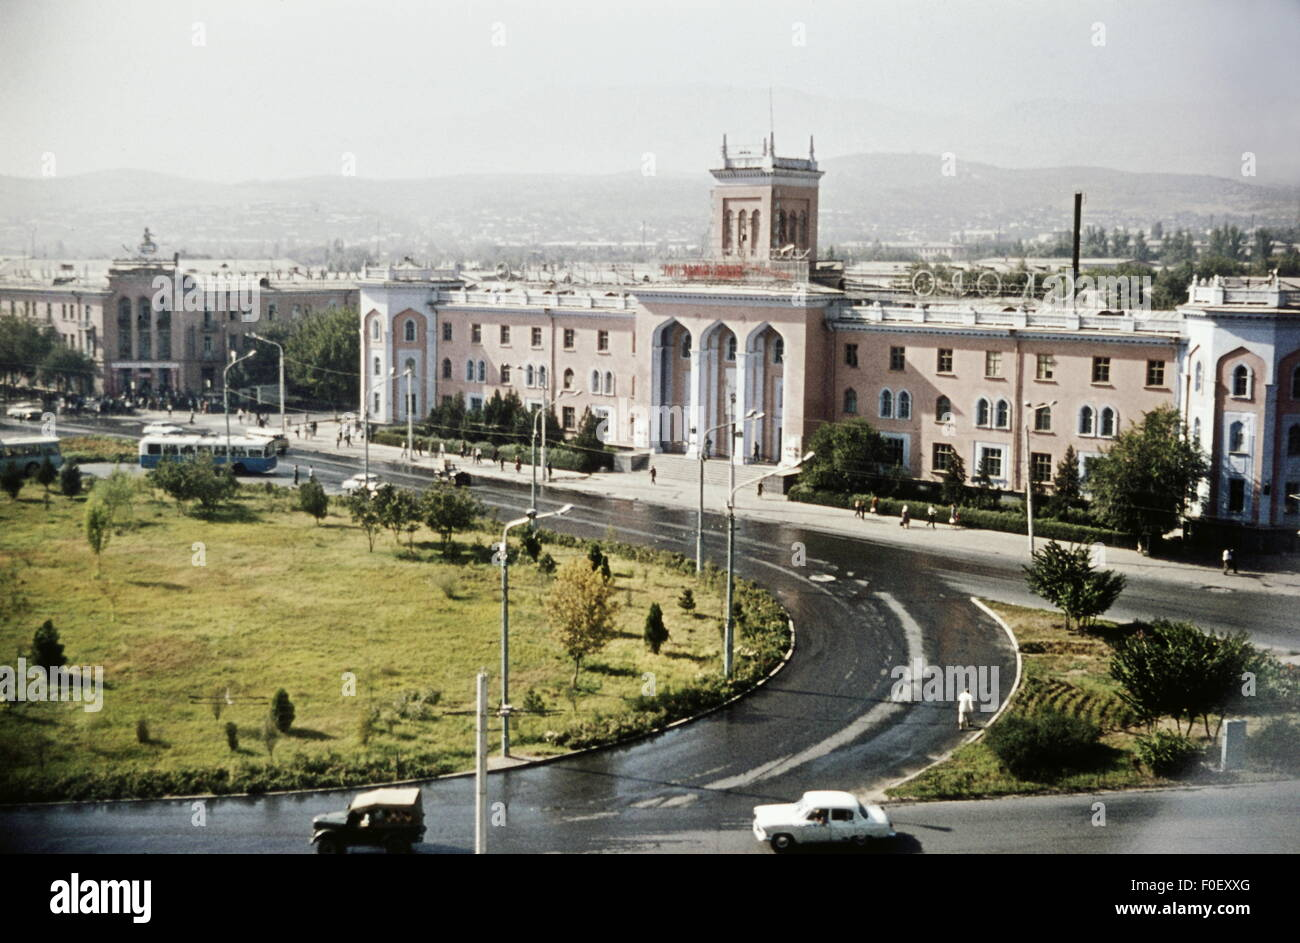 The capital of Tajikistan is Dushanbe. Photos and sights 98